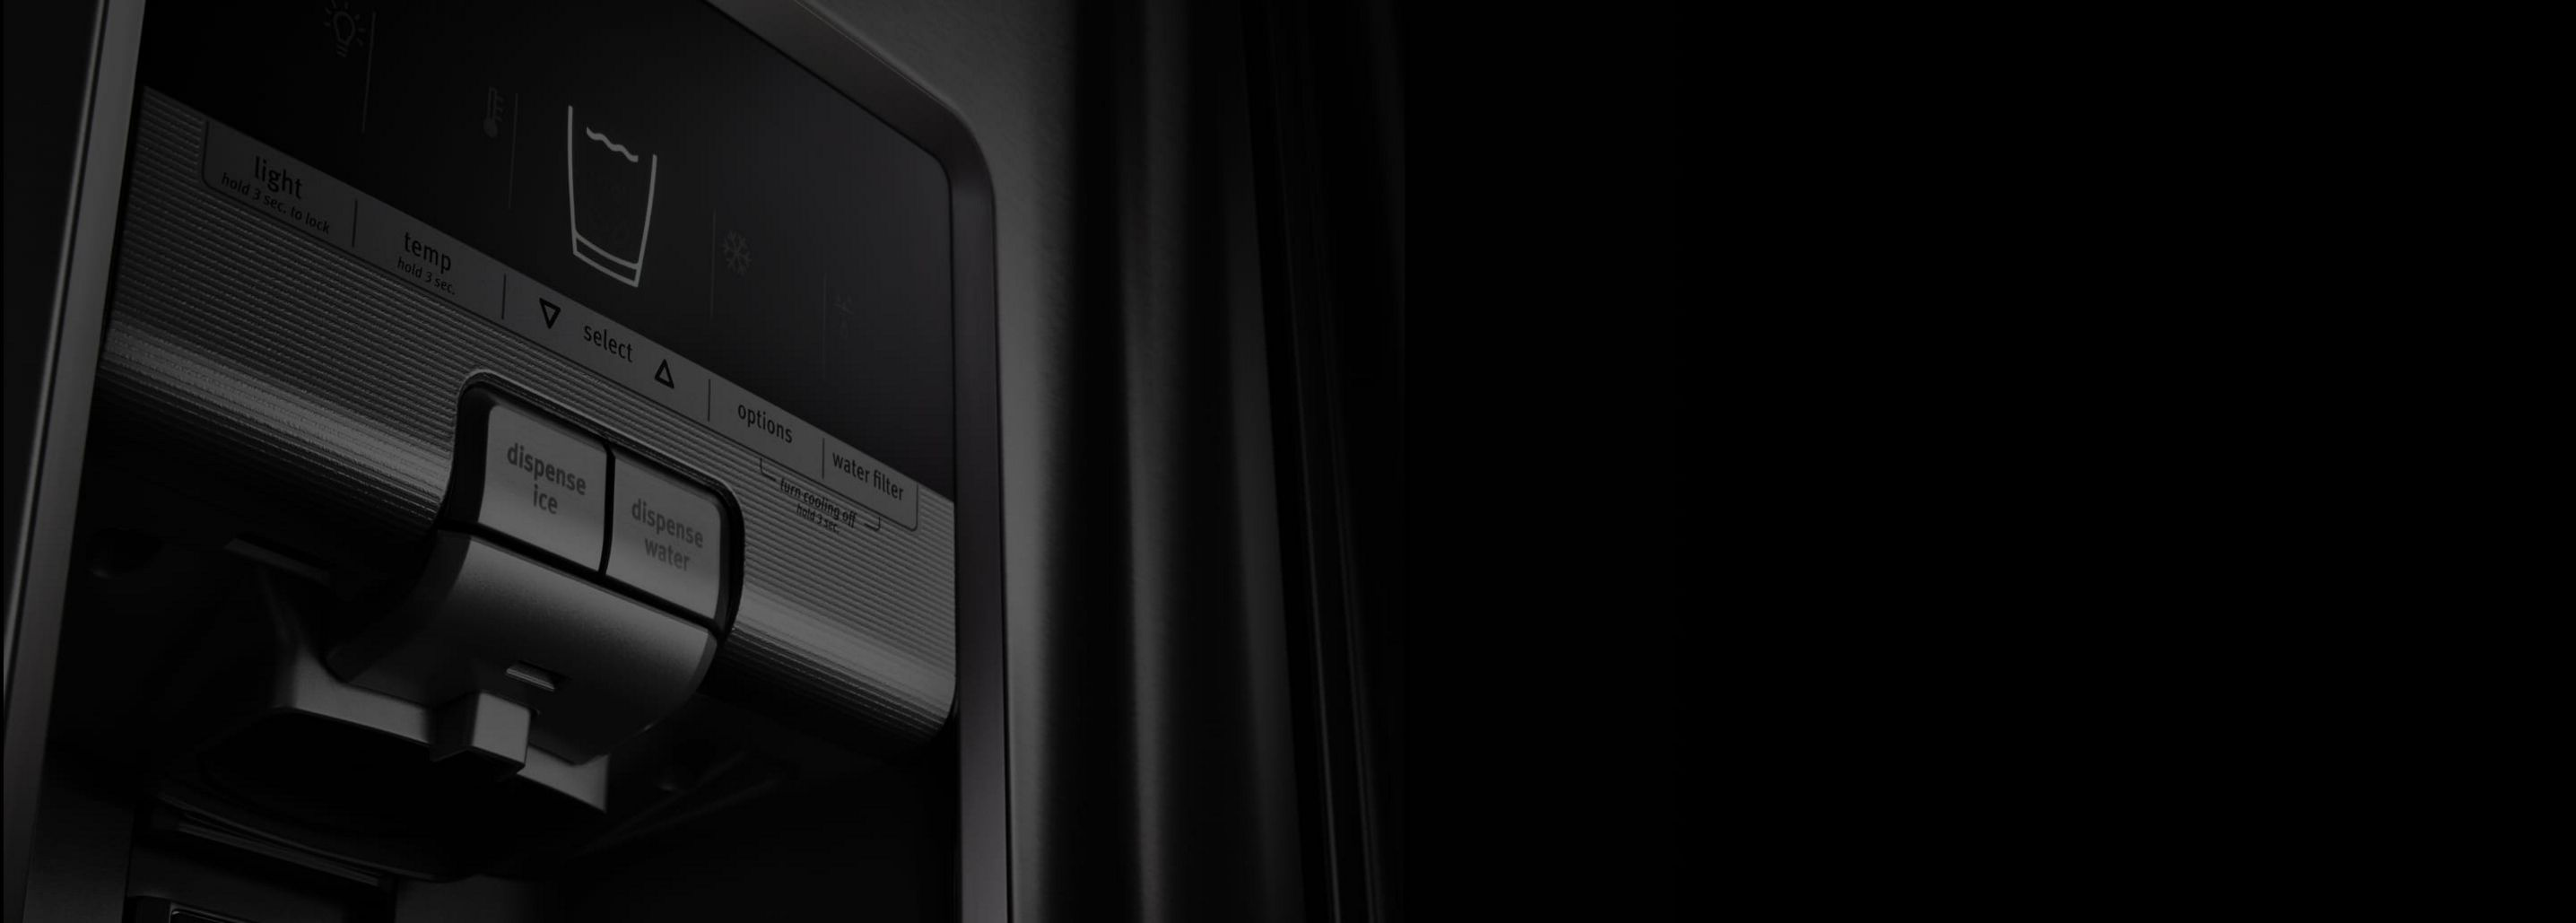 Dramatic, close-up shot of a black Maytag refrigerator ice and water dispenser.